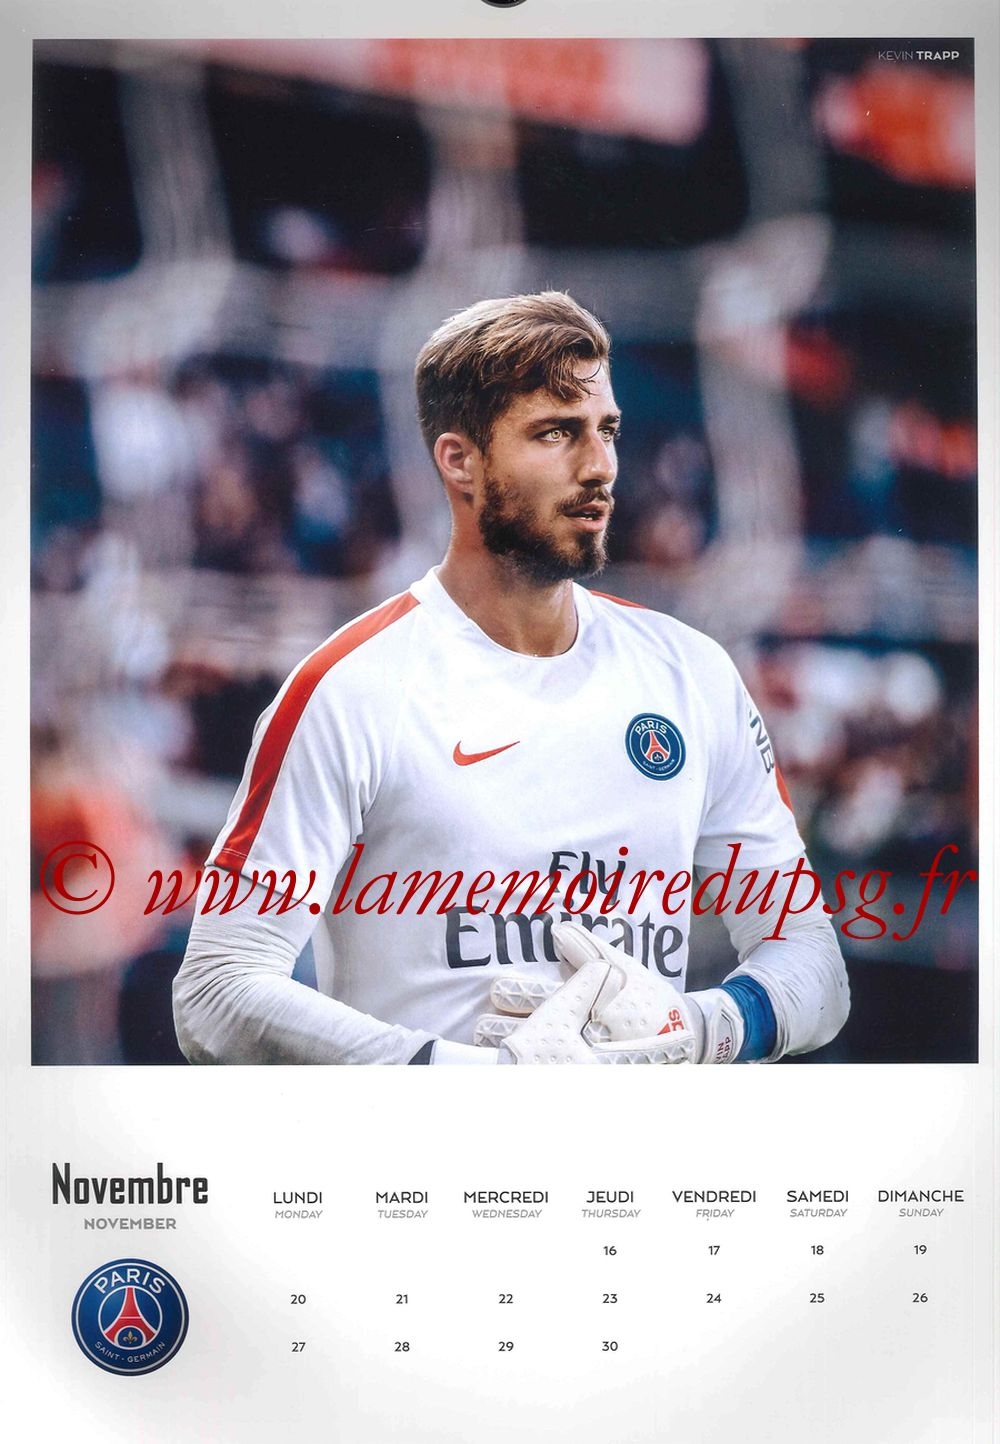 Calendrier PSG 2017 - Page 22 - Kevin TRAPP